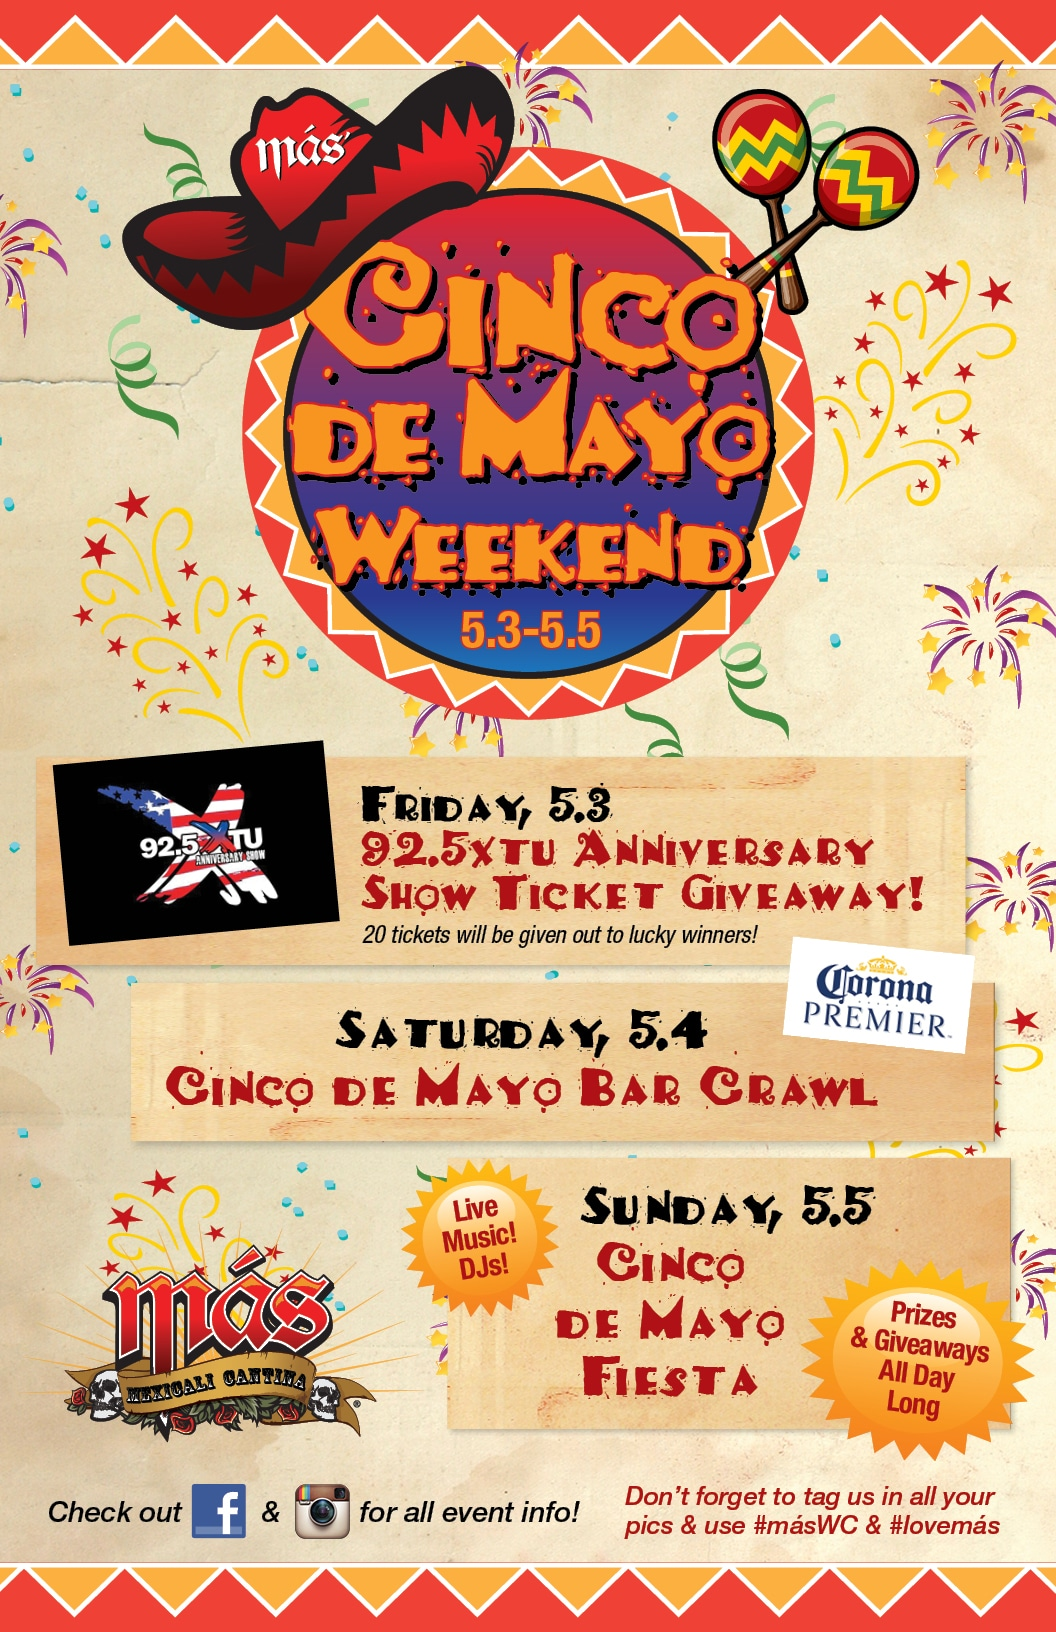 Cinco de Mayo Weekend Poster 2019